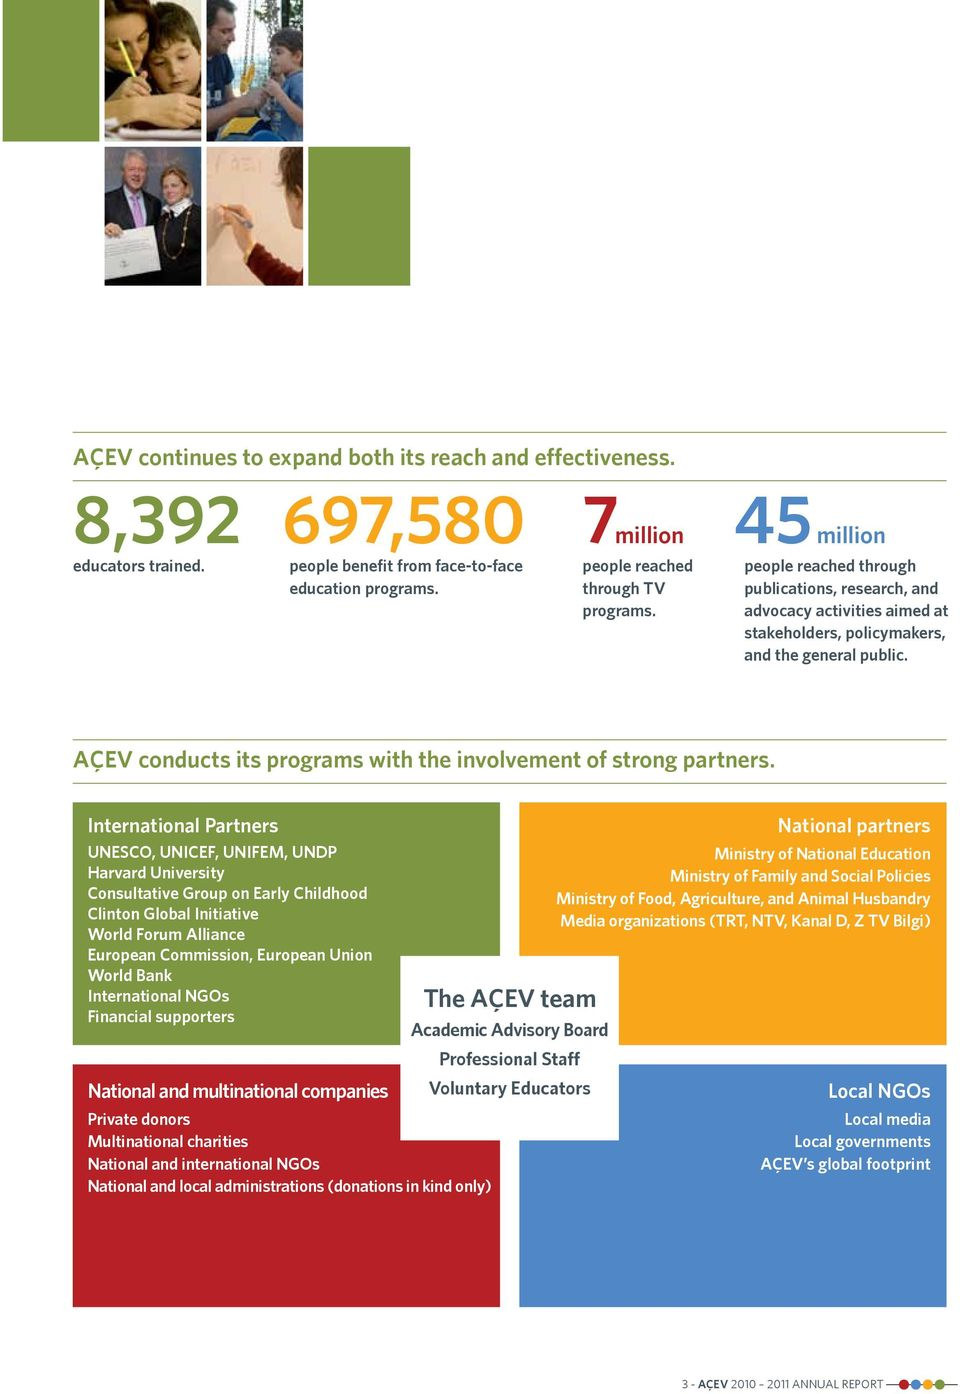 AÇEV conducts its programs with the involvement of strong partners.